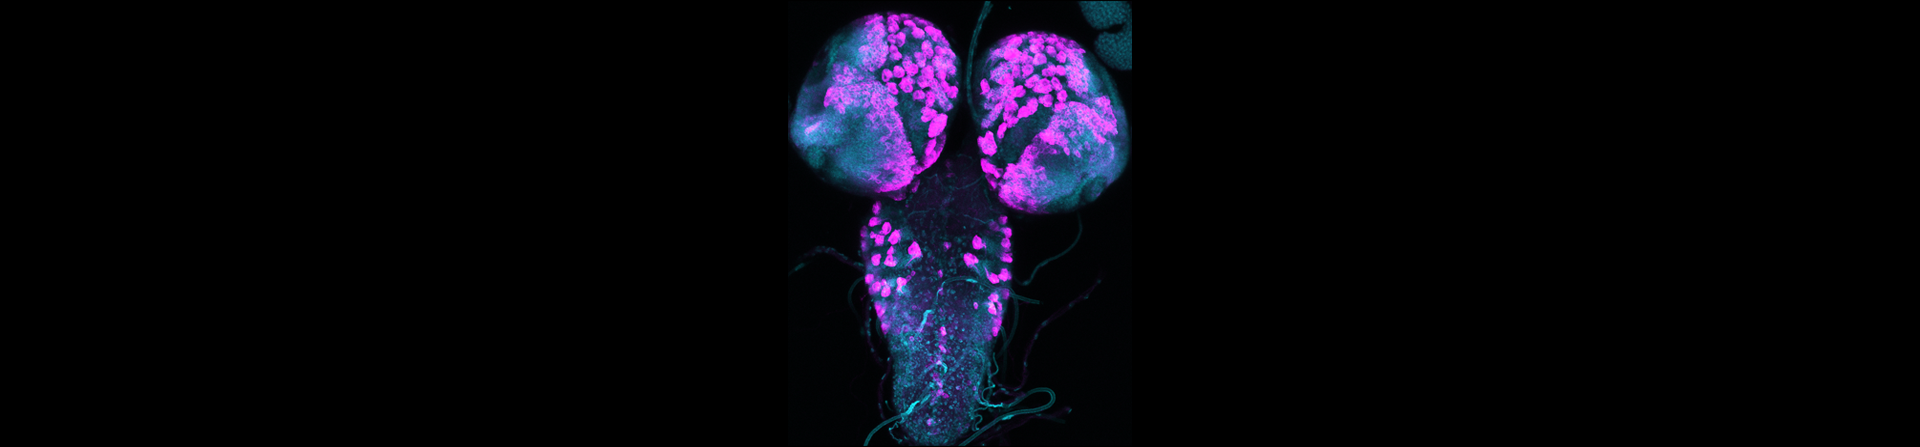 Whole mount of a 3rd instar fruit fly larval brain showing developing brain structures. The sample is immunostained with antibodies to HA-tagged proteins (magenta) and elav (cyan), a neuronal marker.